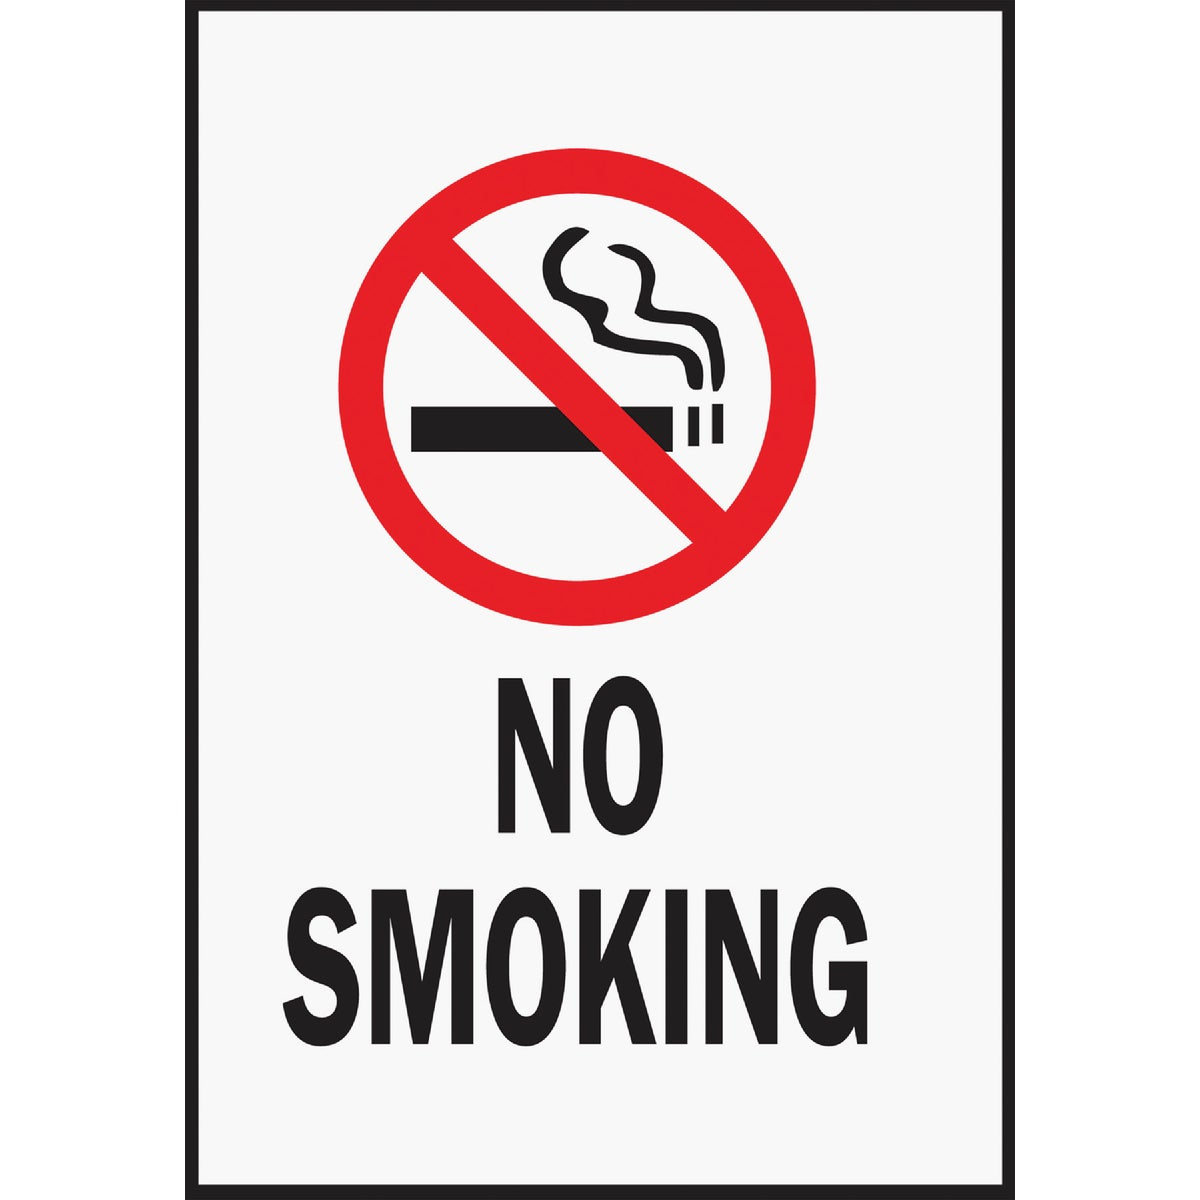 6-3/4X11 NO SMOKING SIGN - HSV-8 by Hy Ko Prods Co